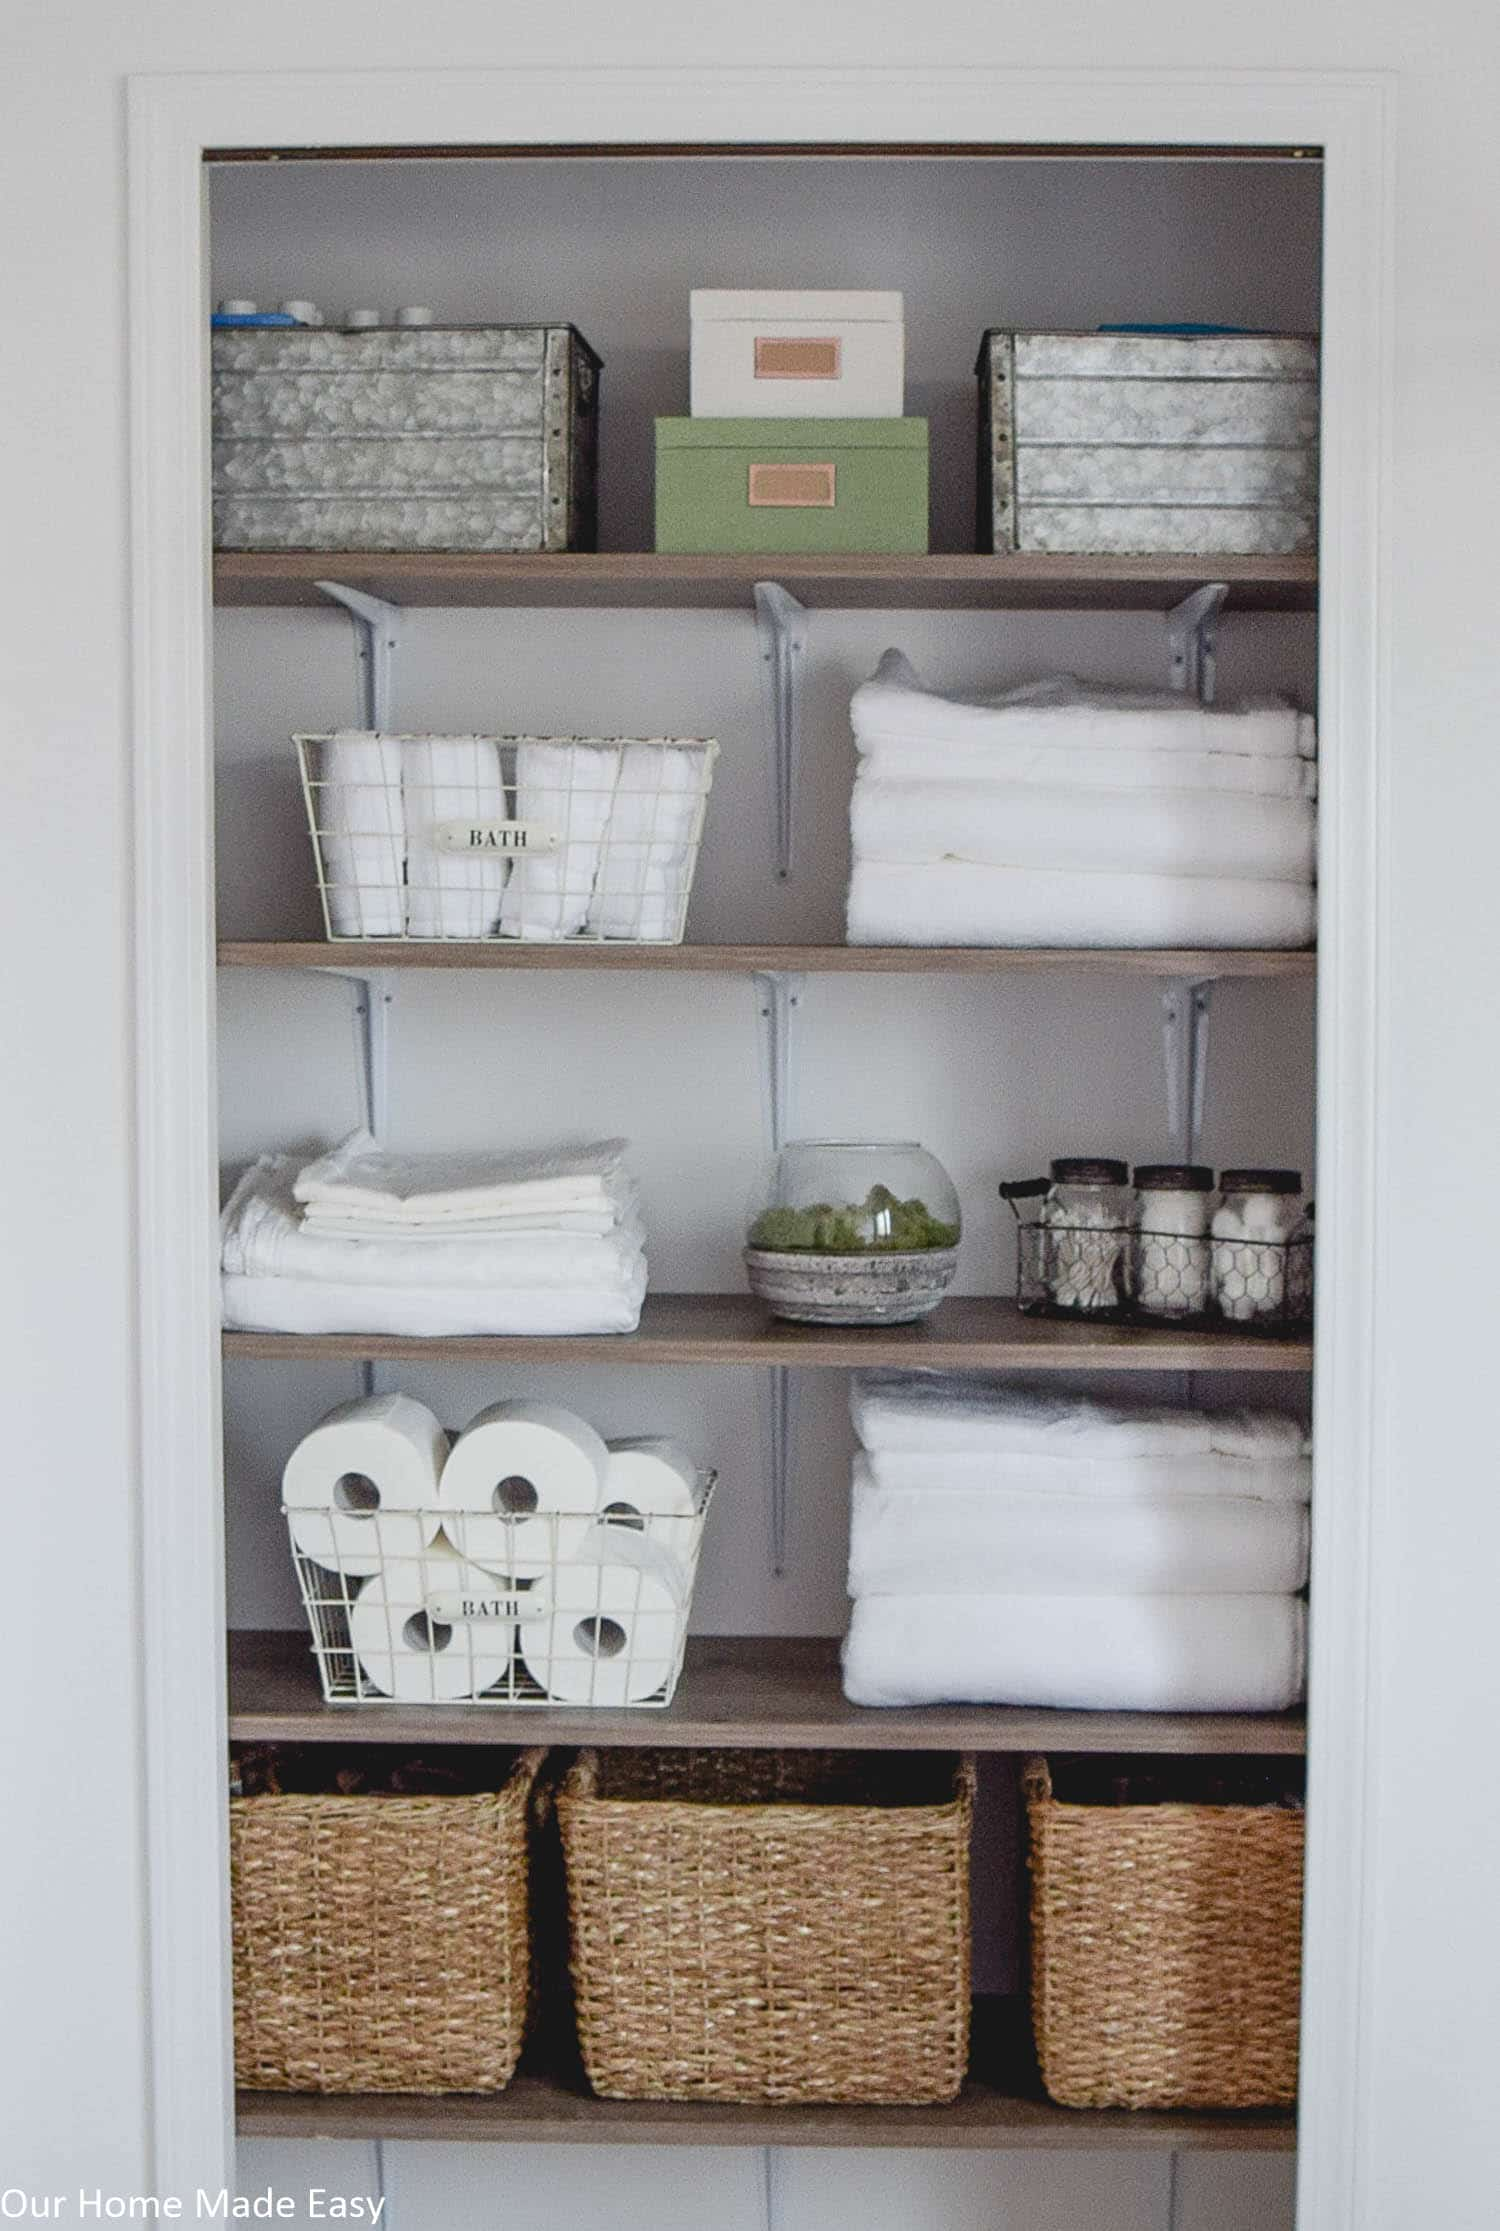 A DIY but custom shelving system for a linen closet makeover. Check out the organizational ideas and how to DIY your own shelves!